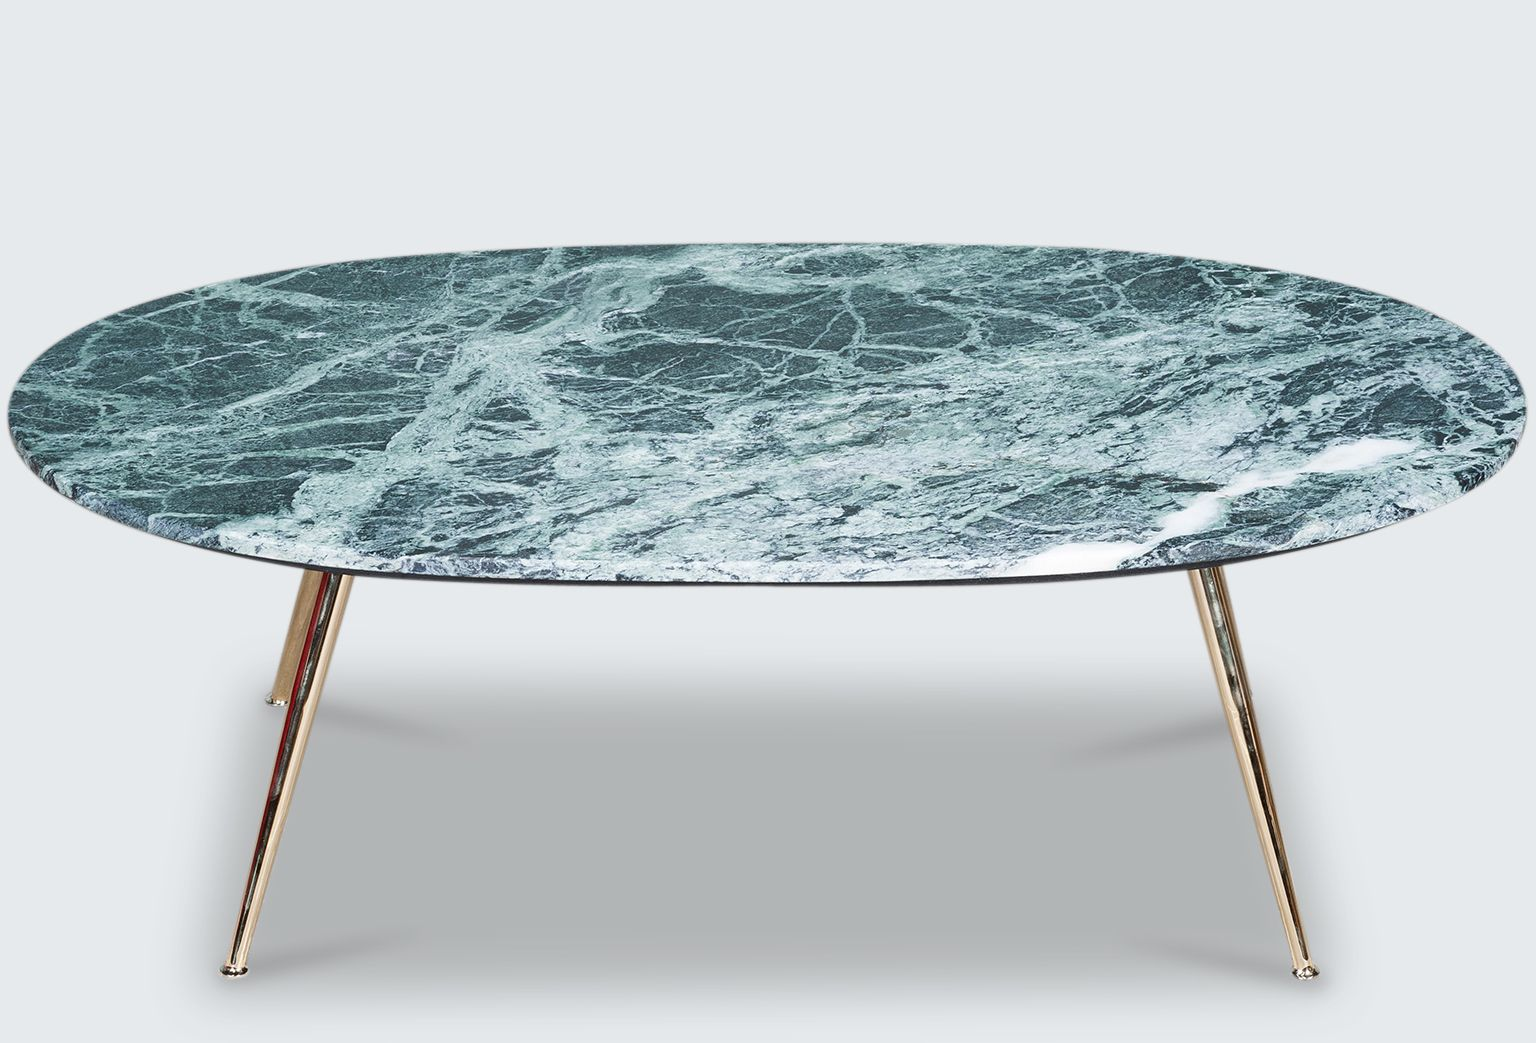 MODERN TIMES MARBLE COFFEE TABLE- BLACK/GREEN Modern Times designed and made marble-top coffee table. Available in black, white or pink marble with tapered brass legs.